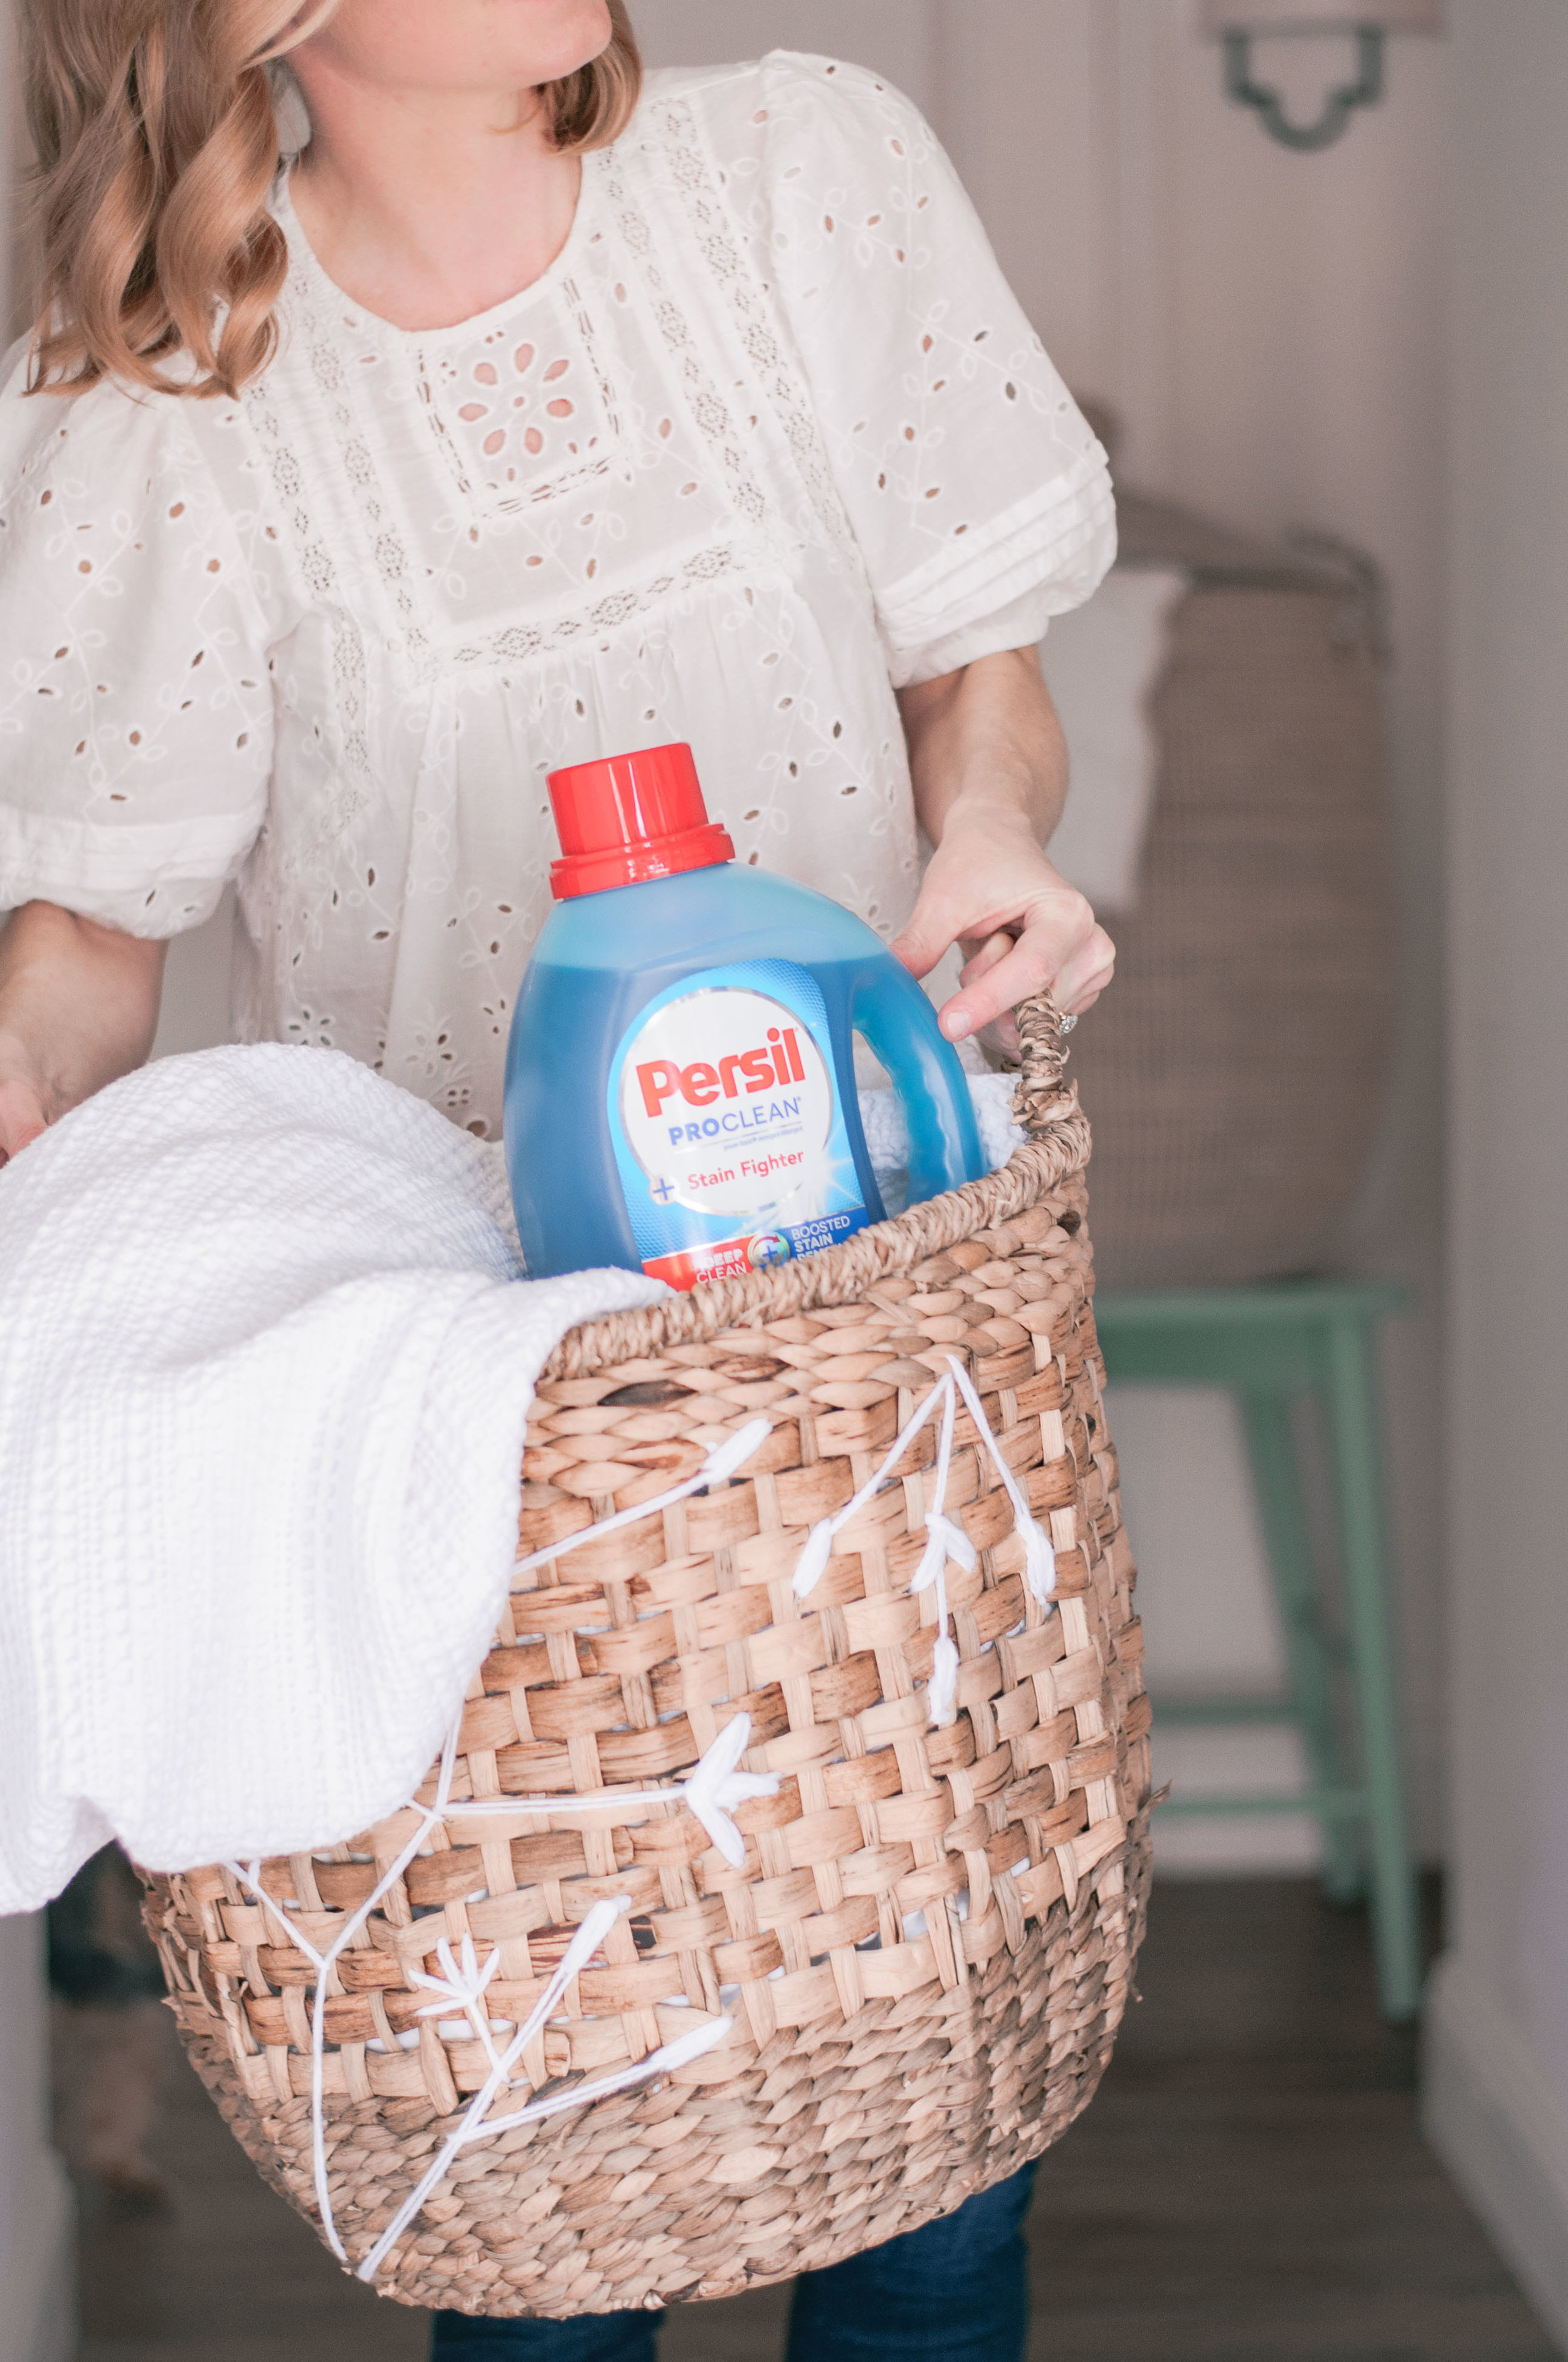 The best laundry detergent for whites